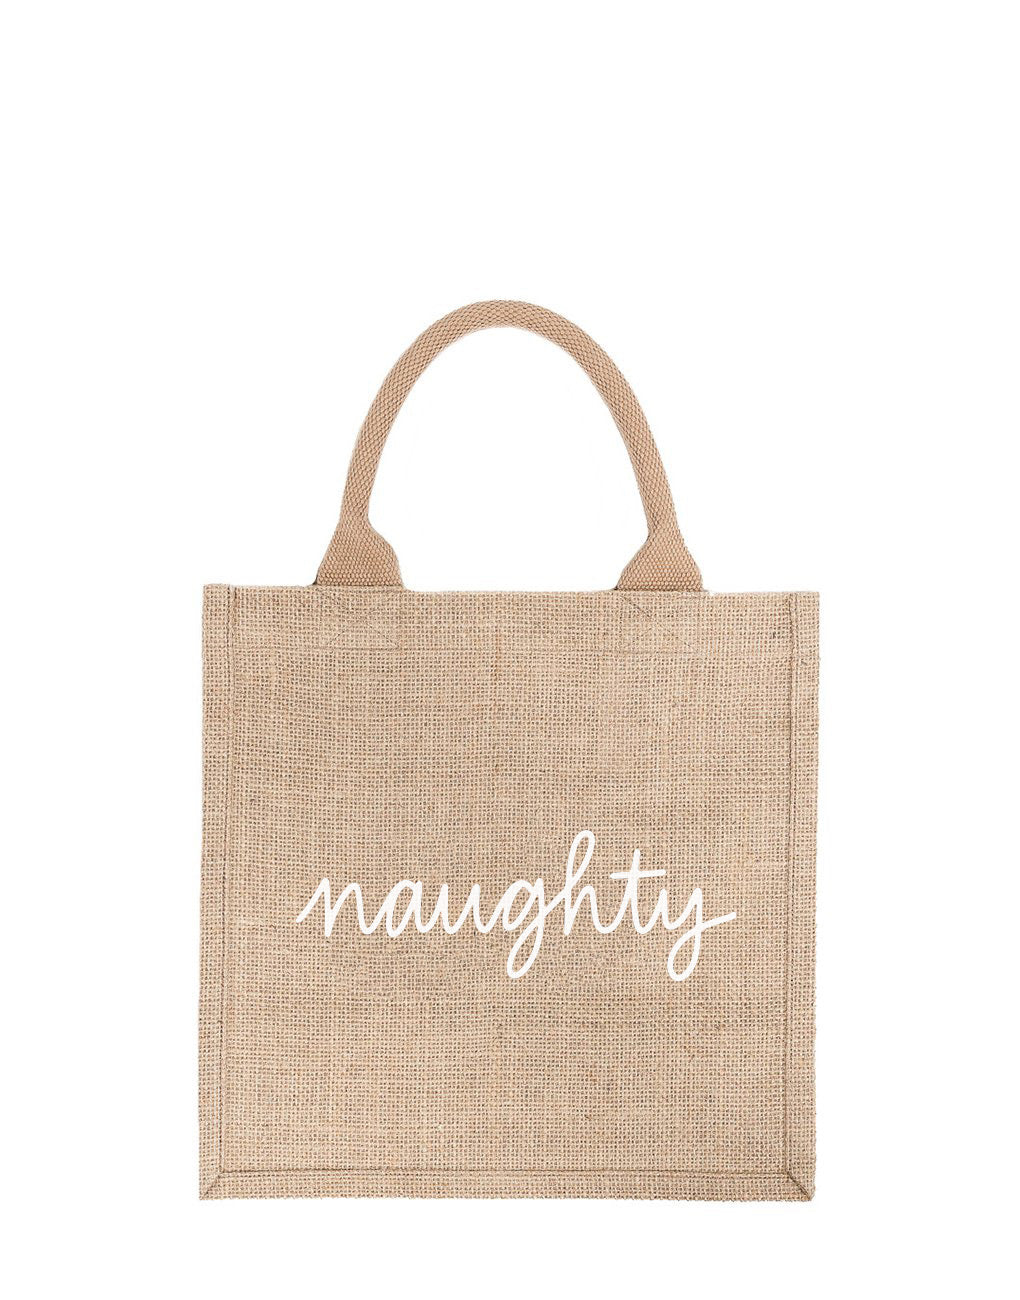 Large Naughty Reusable Gift Tote In White Font | The Little Market